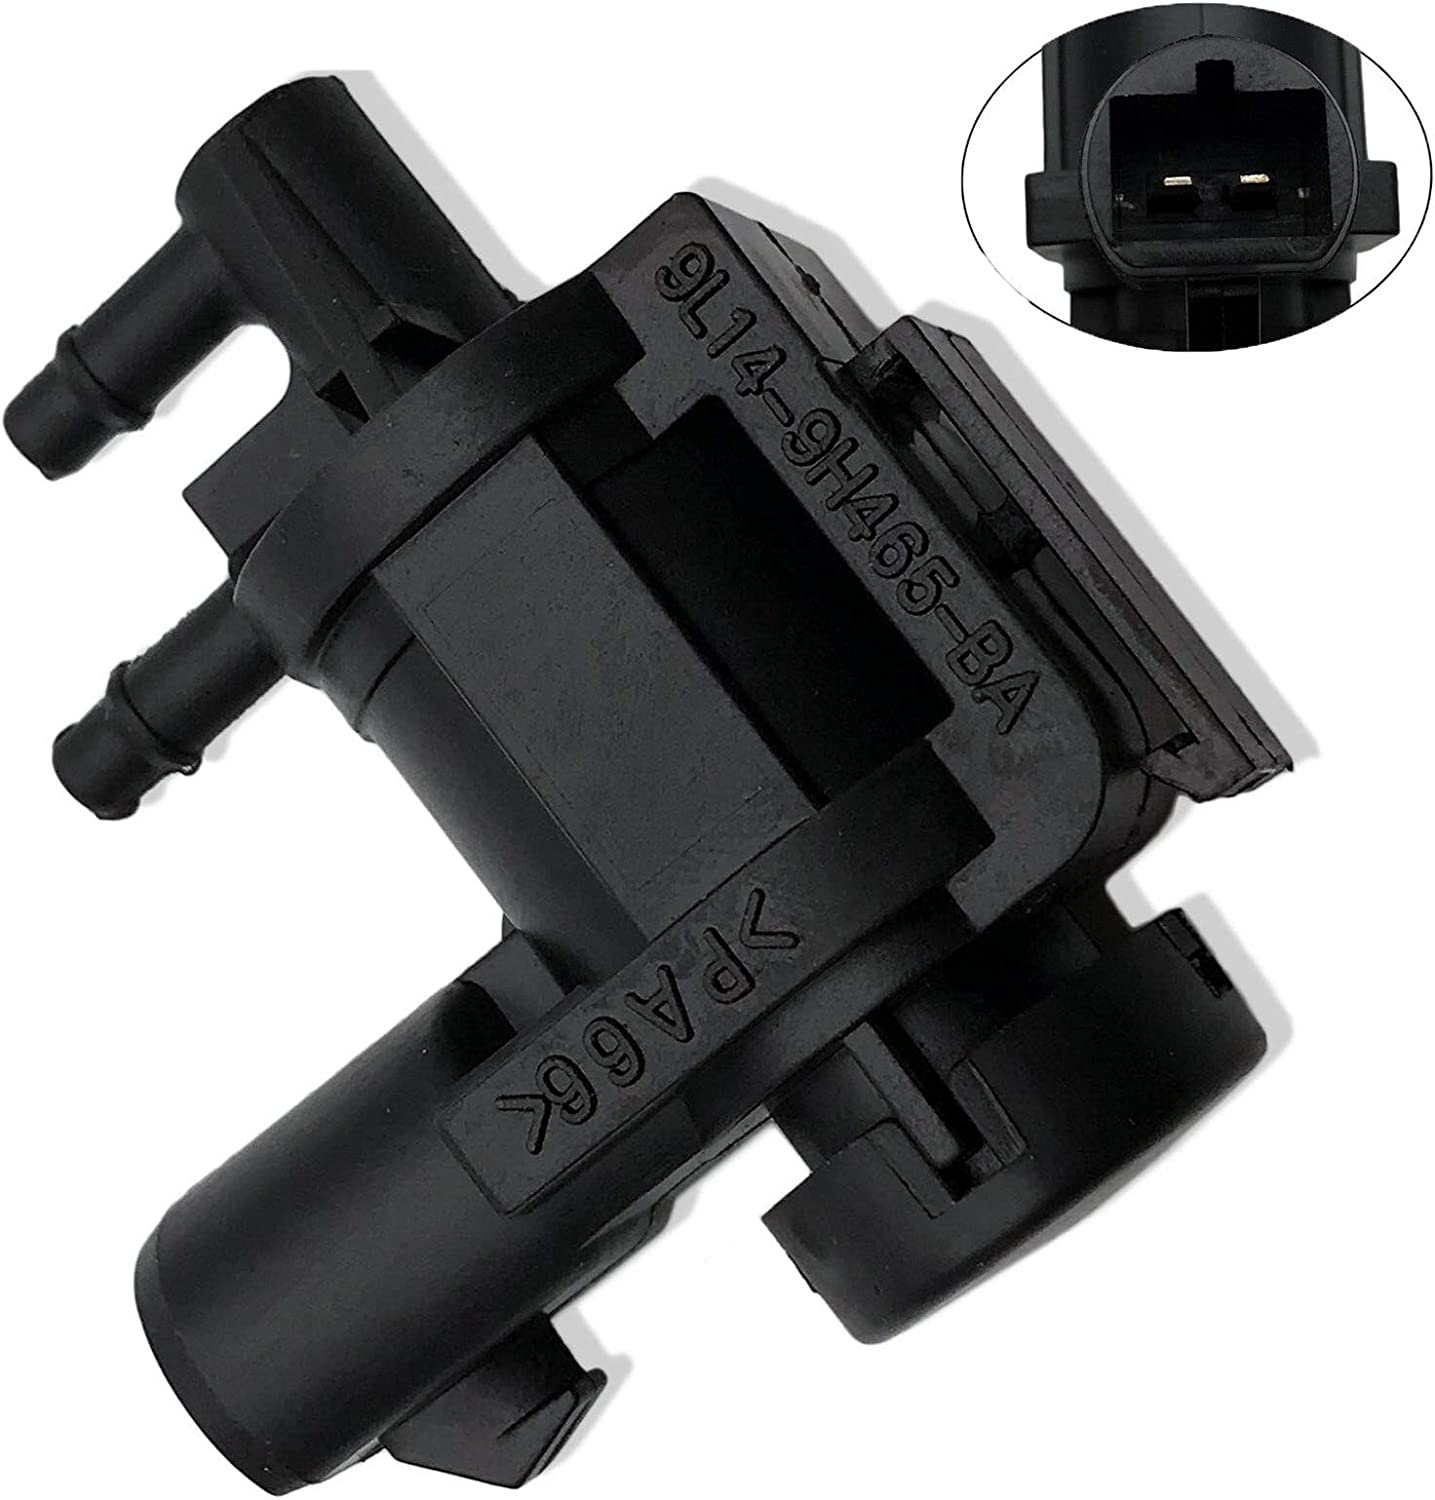 Kunttai Vacuum Solenoid Purge Valve Fit for FORD F-150 Lobo F-250 Expedition Lincoln Navigator Replaces# 9L14-9H465-BA, 6L3Z-9H465-B